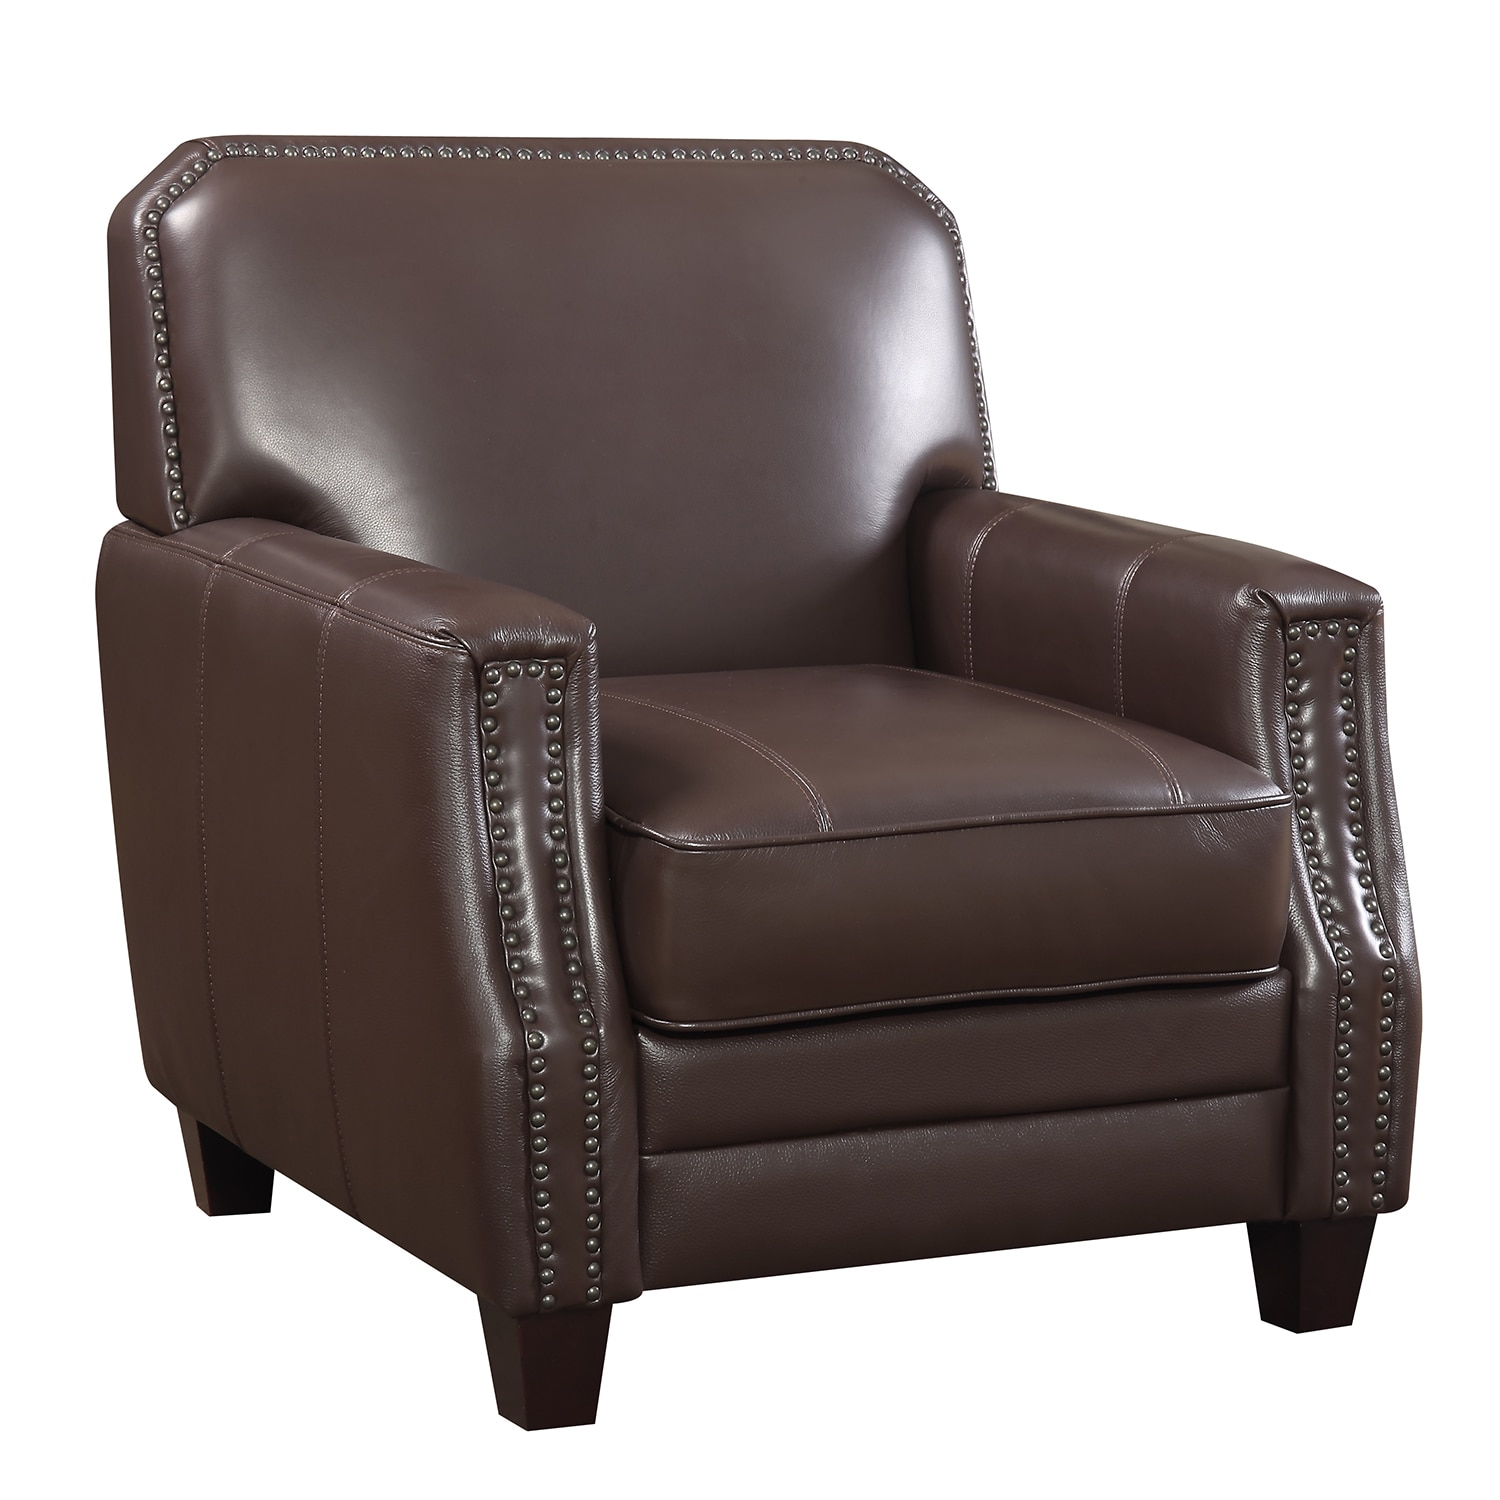 Superieur Shop Full Grain Leather Club Arm Chair   On Sale   Free Shipping Today    Overstock.com   12637170